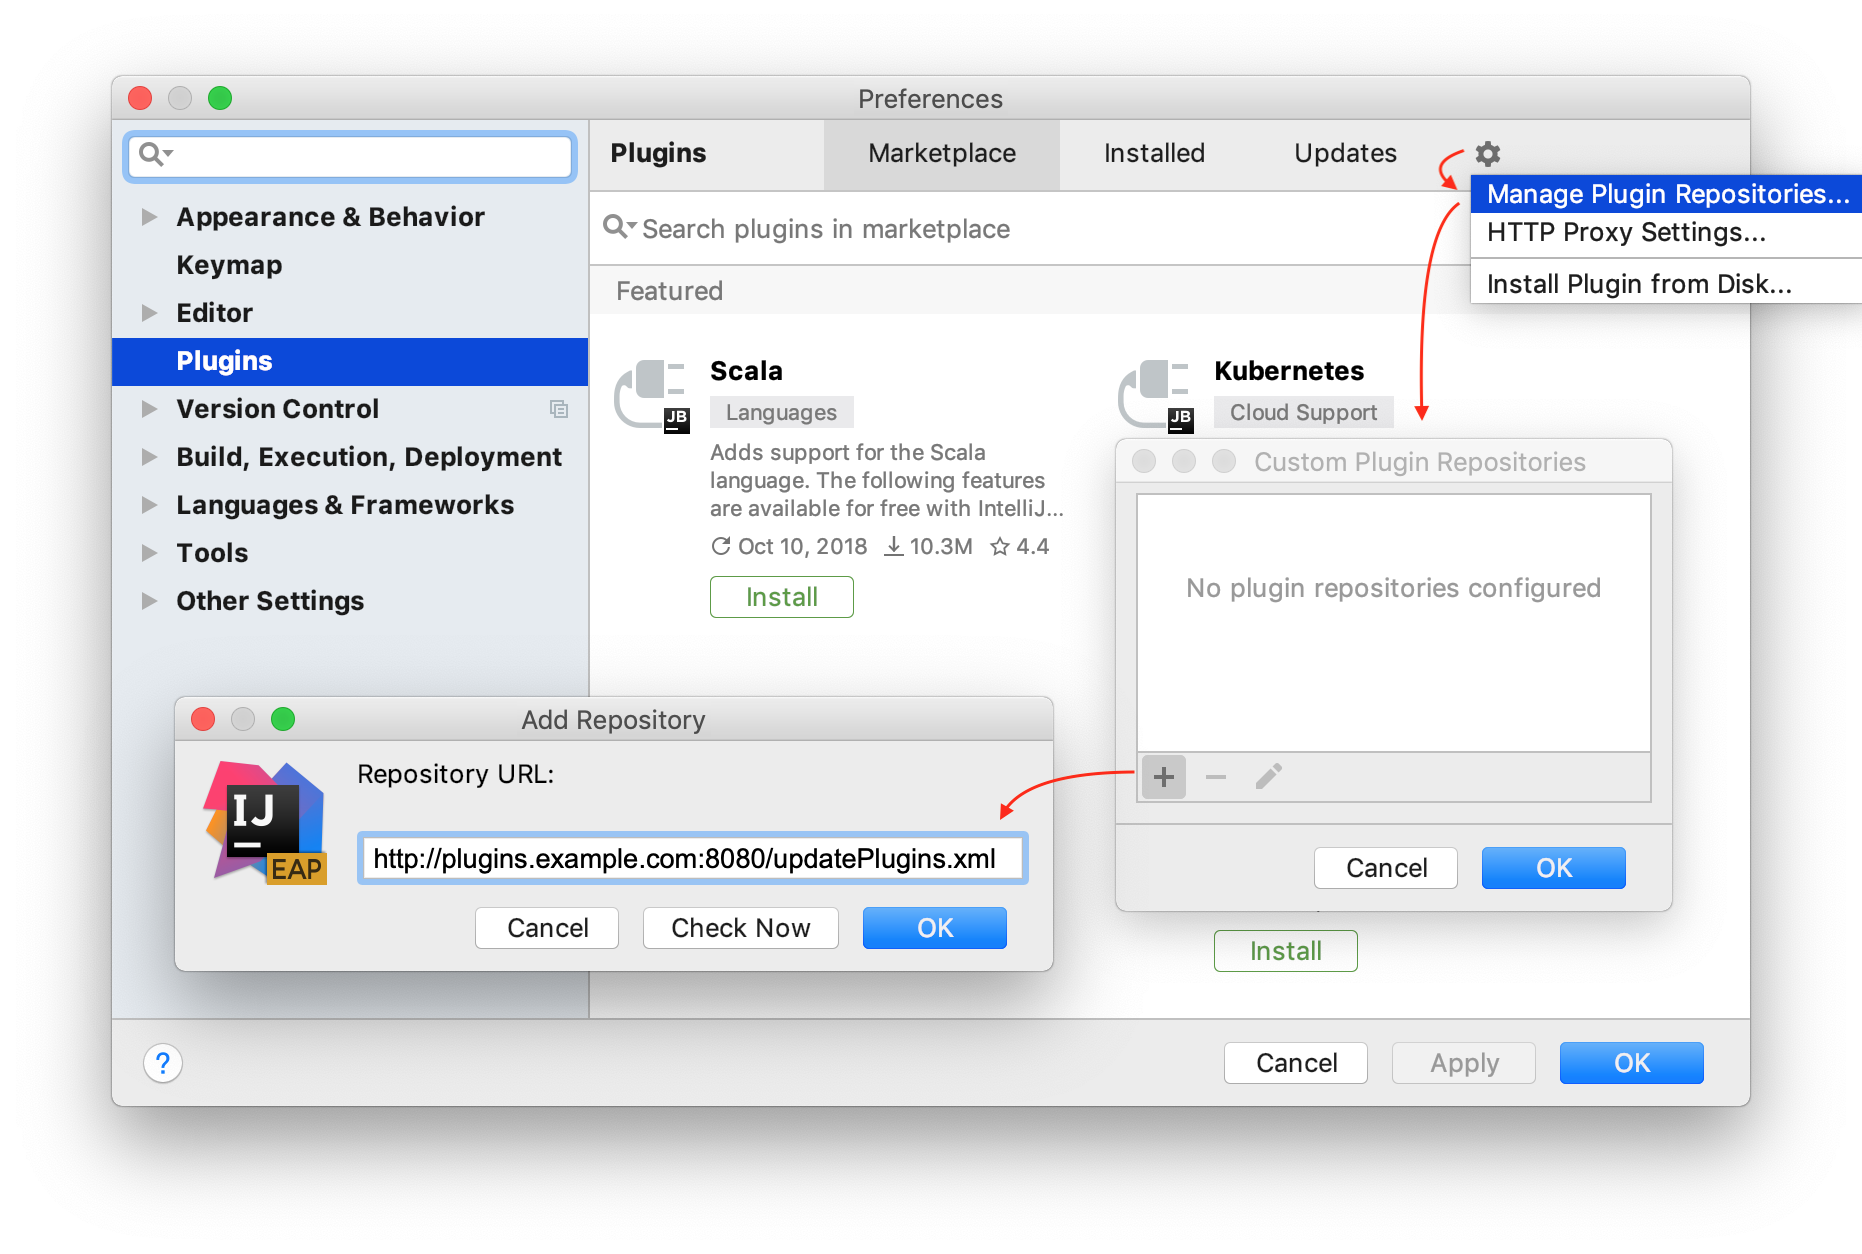 How to add a custom plugin repository